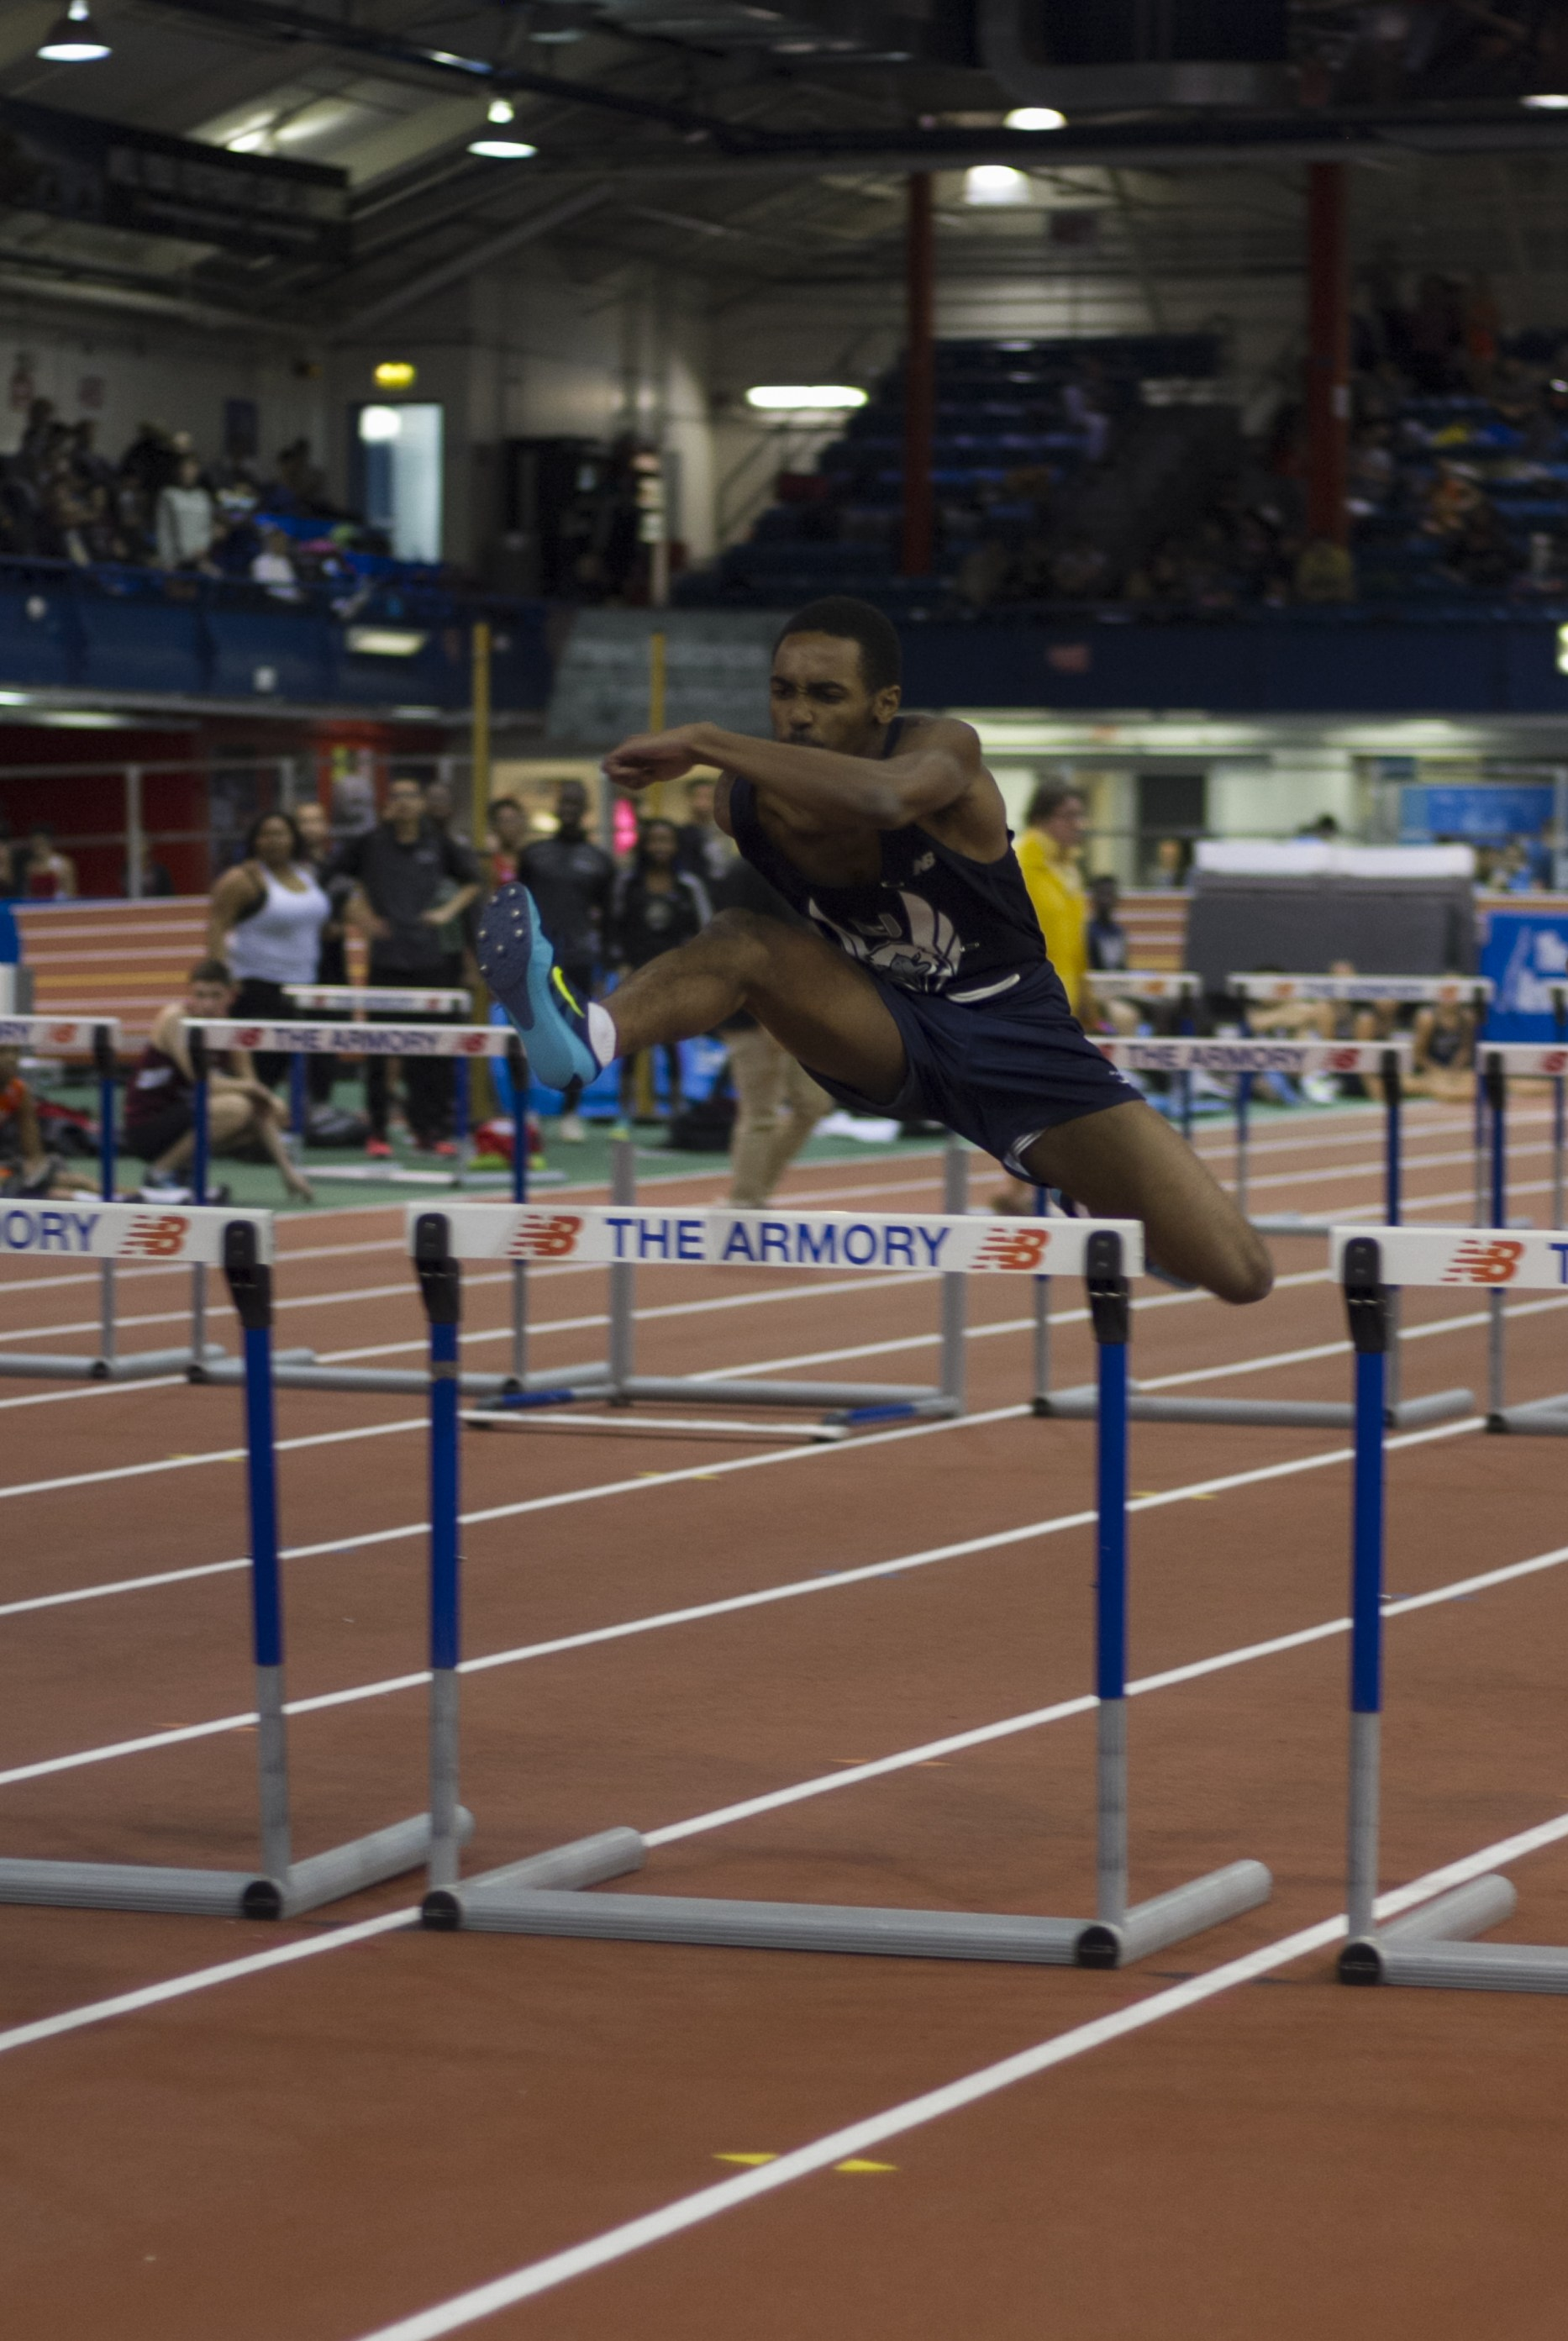 jumping the hurdle